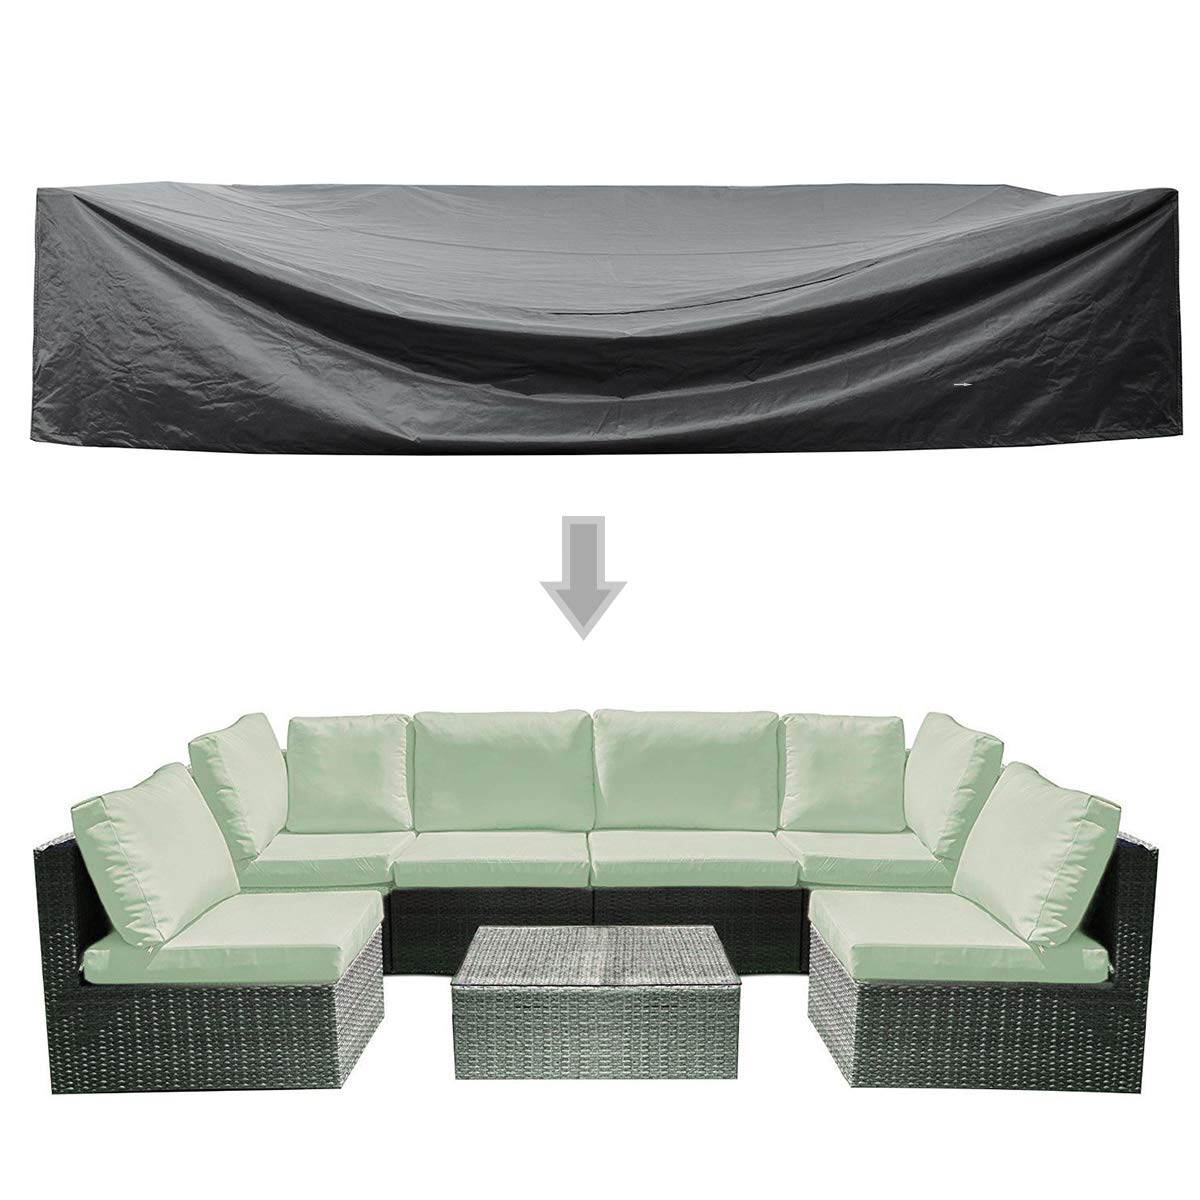 WOMACO Patio Cover Outdoor Furniture Lounge Porch Sofa Waterproof Dust Proof Protective Covers (126'' x 63'' x 29'', Black) by WOMACO